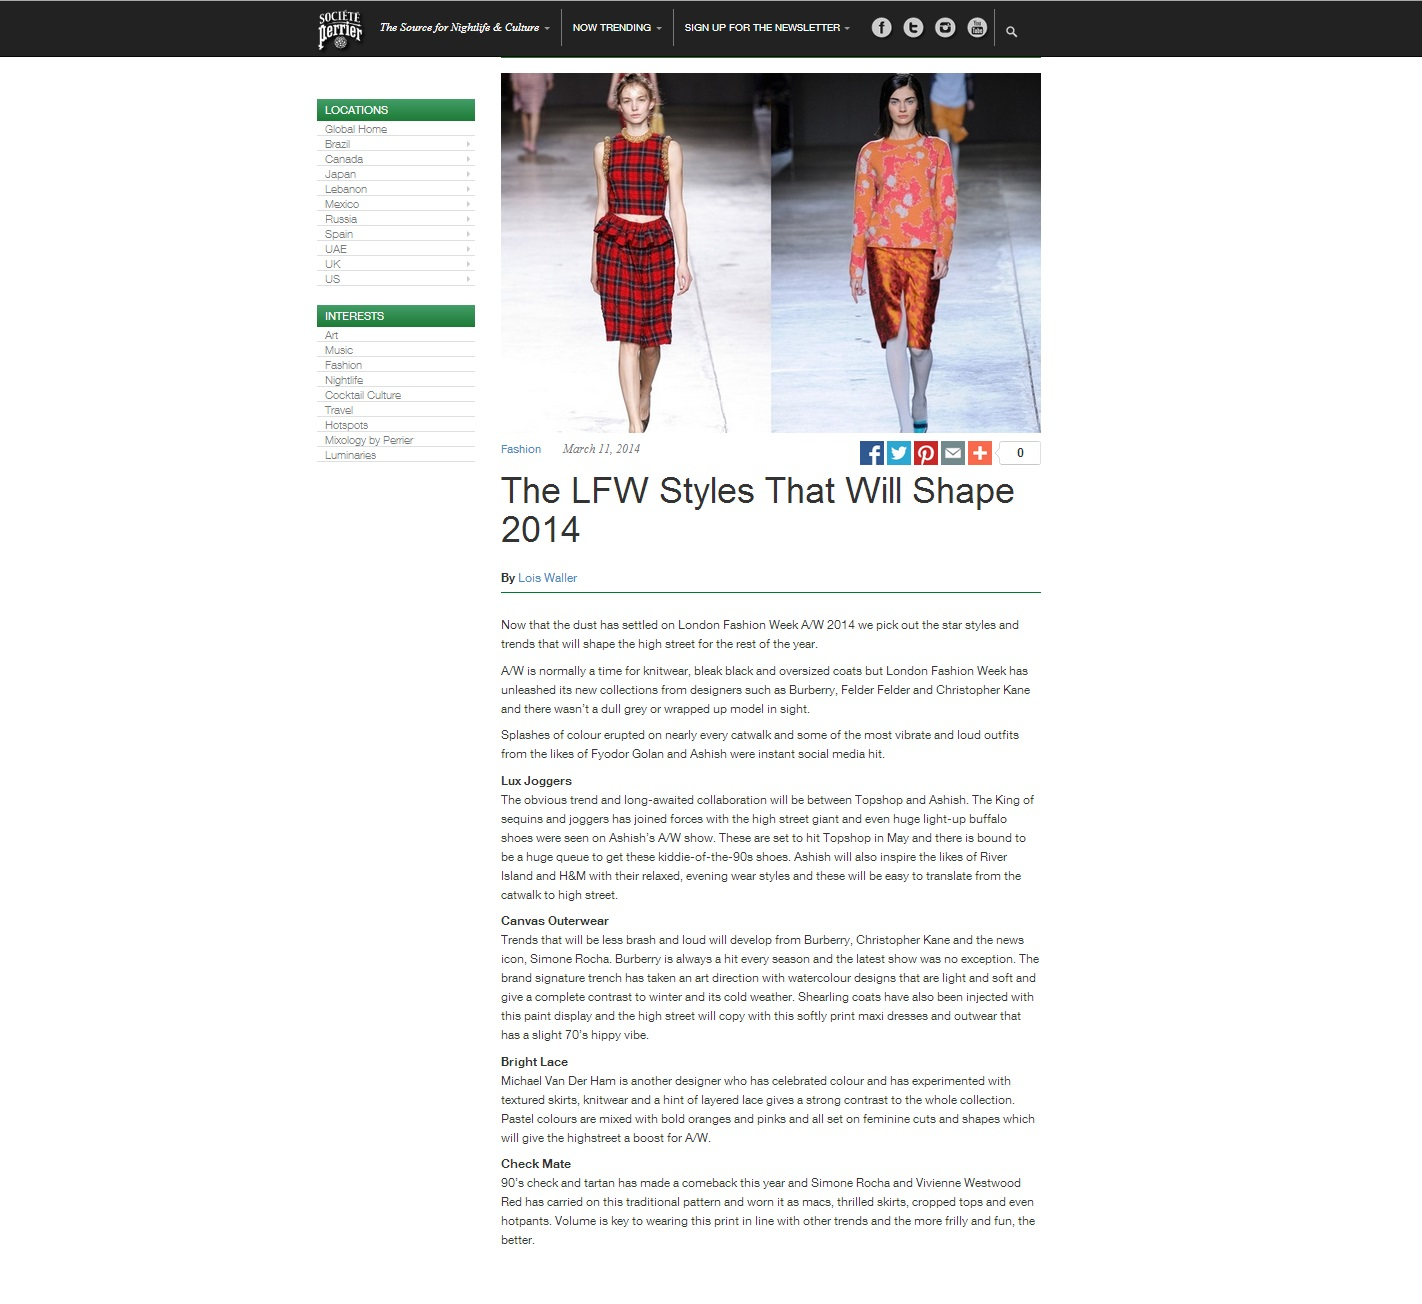 Societe perrier LFW Styles for 2014 March 2014